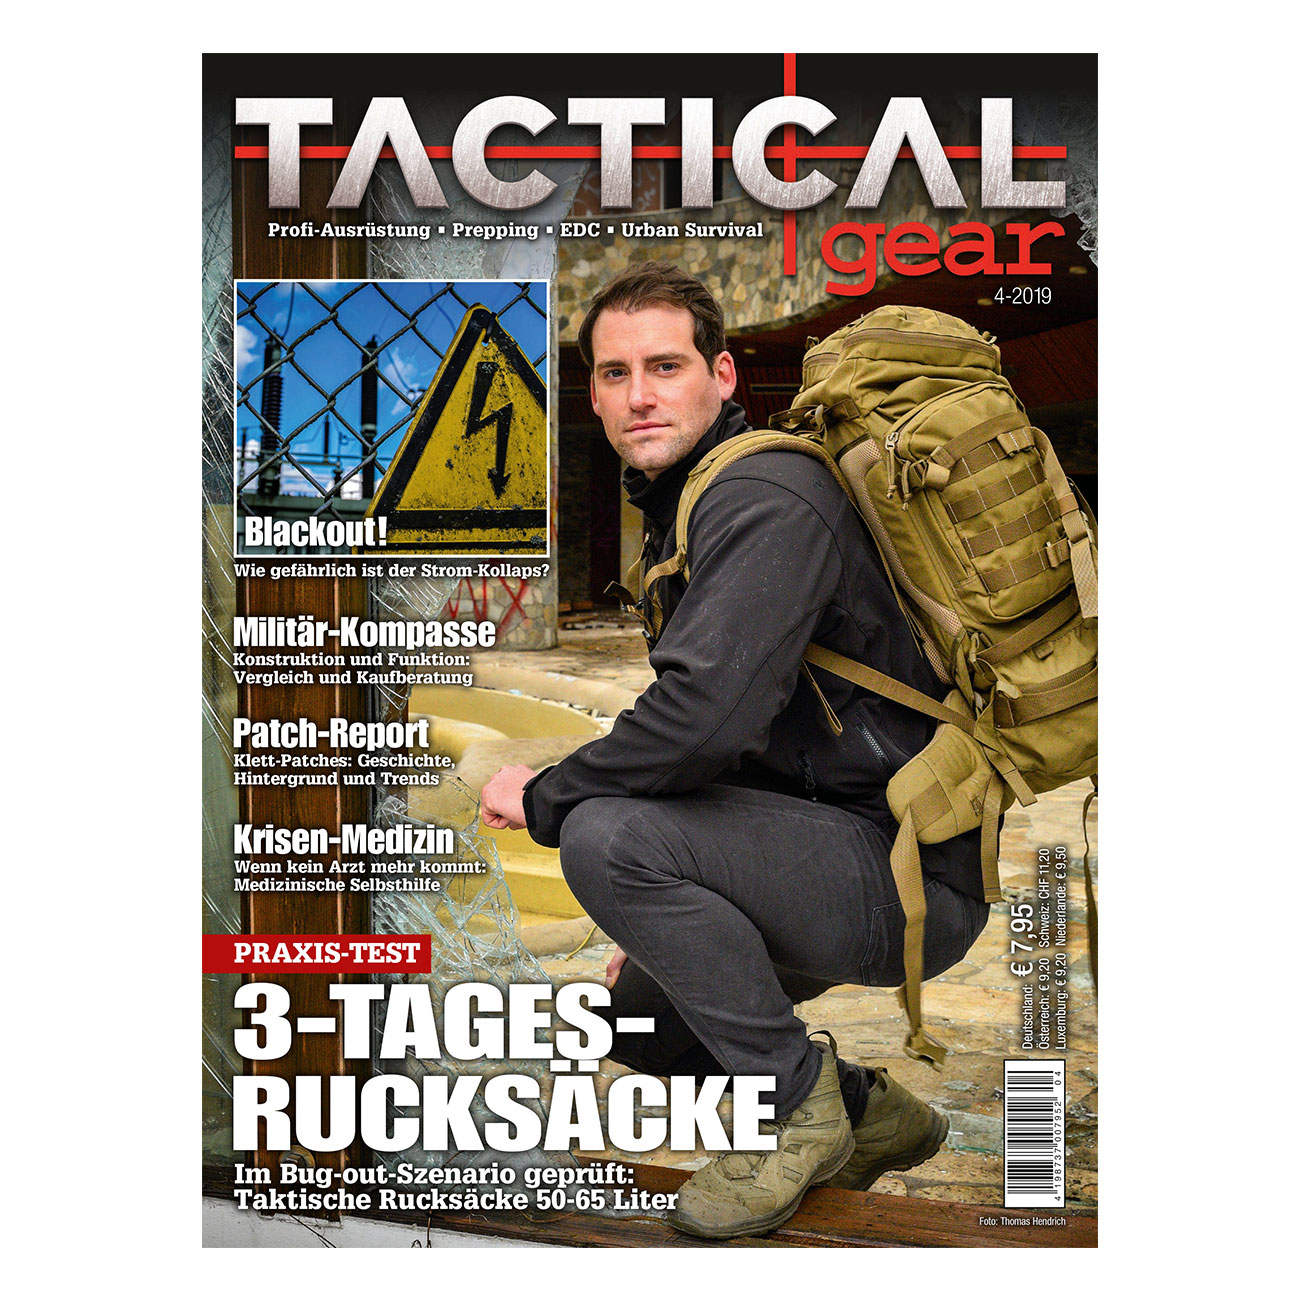 Tactical Gear Magazin Ausgabe 04/2019 0